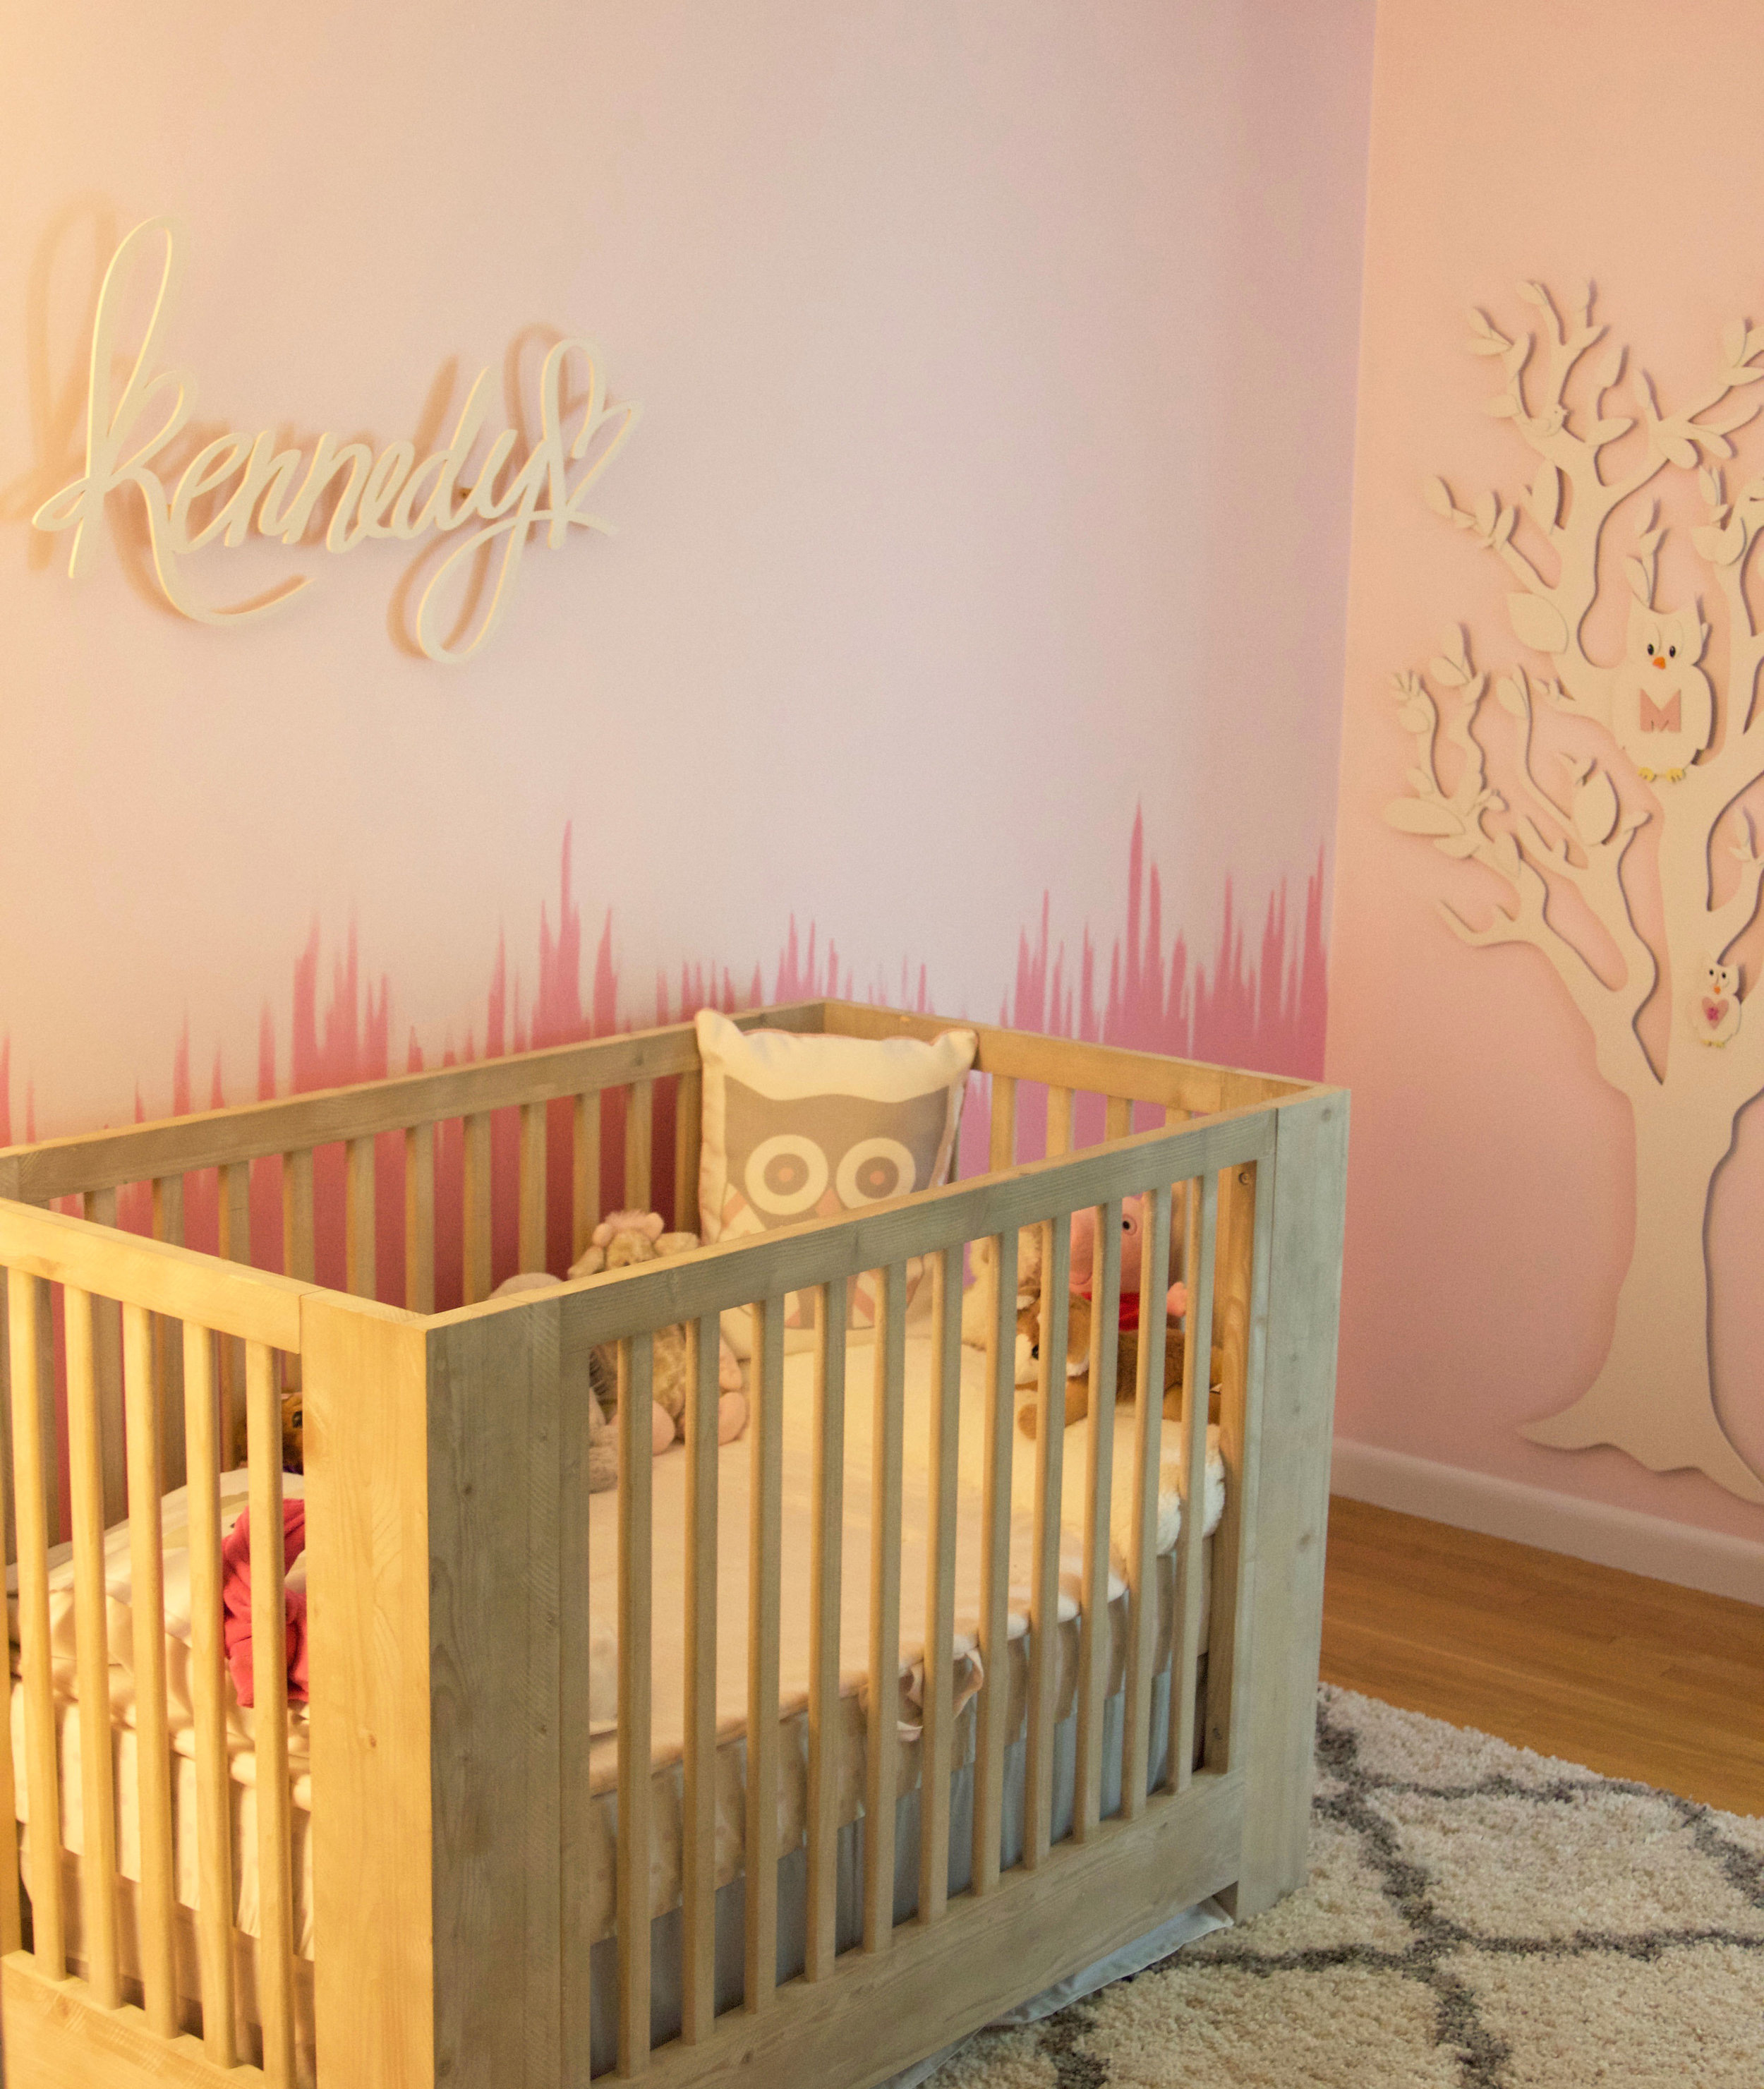 Kennedy's Pink Accent wall for her BIG GIRL room